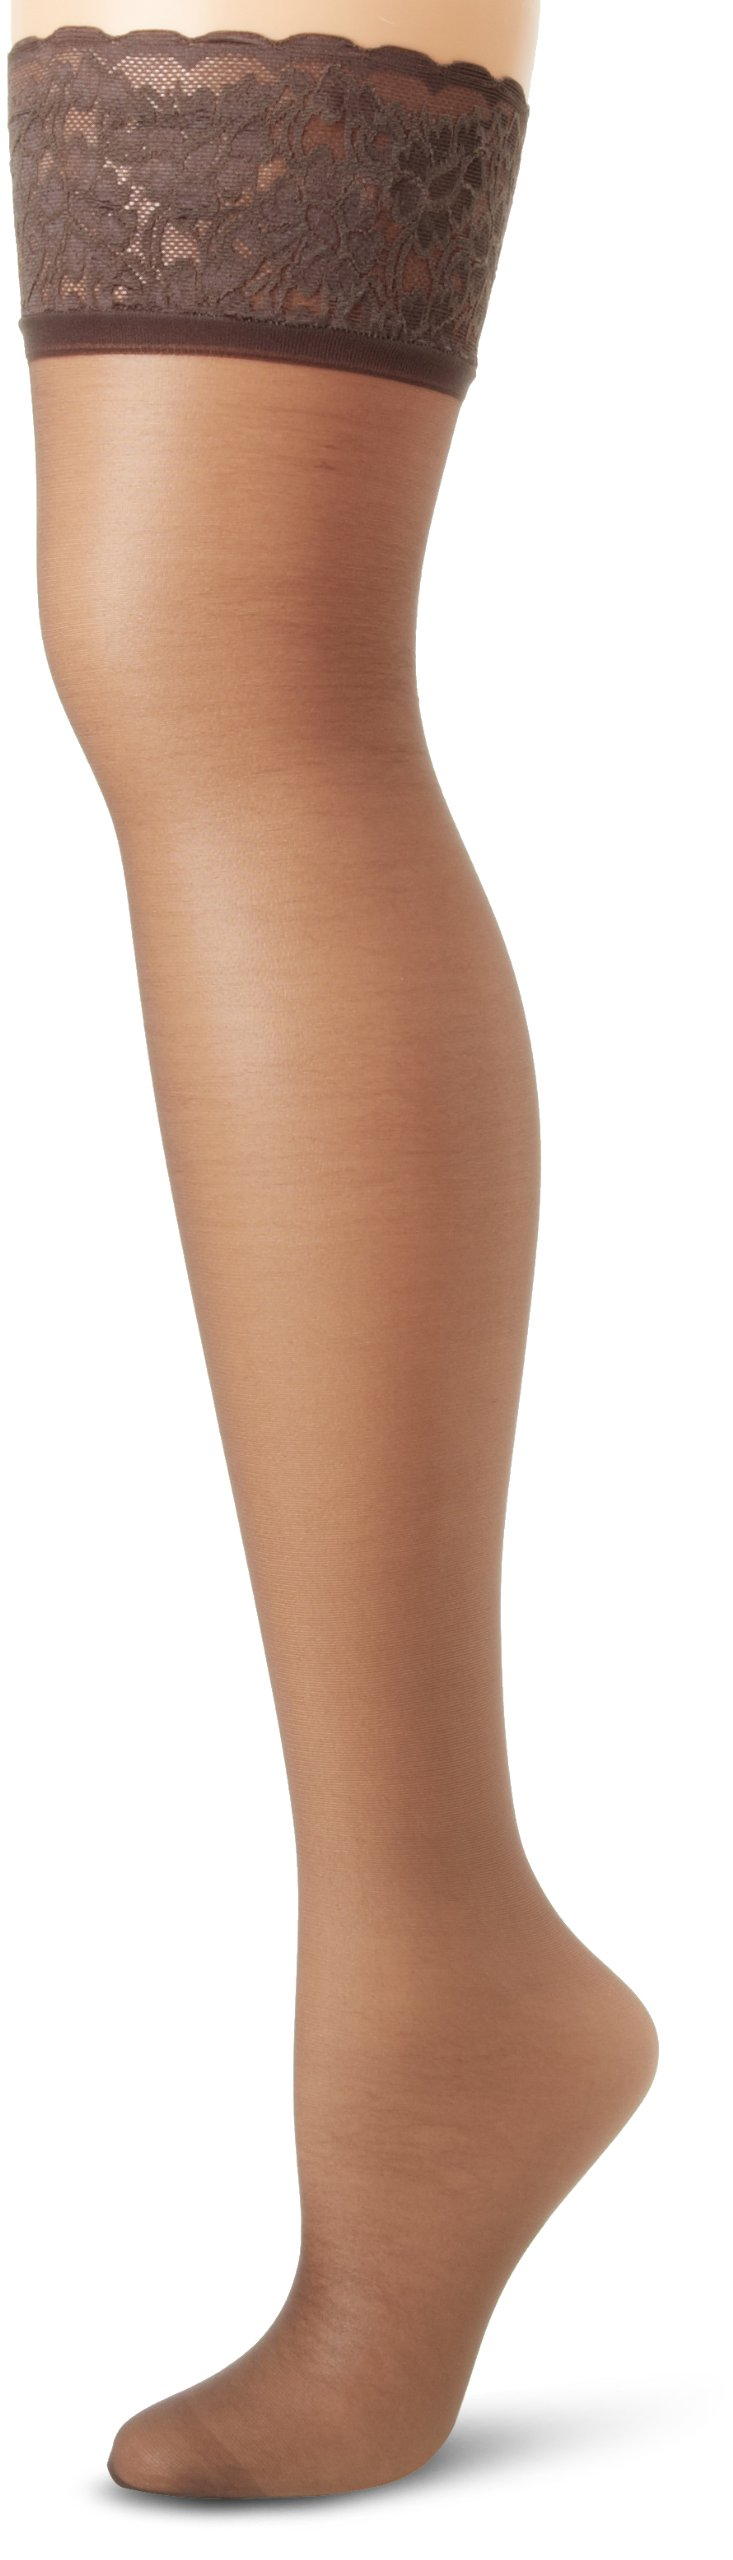 Hanes Silk Reflections Women's Lace Top Thigh High